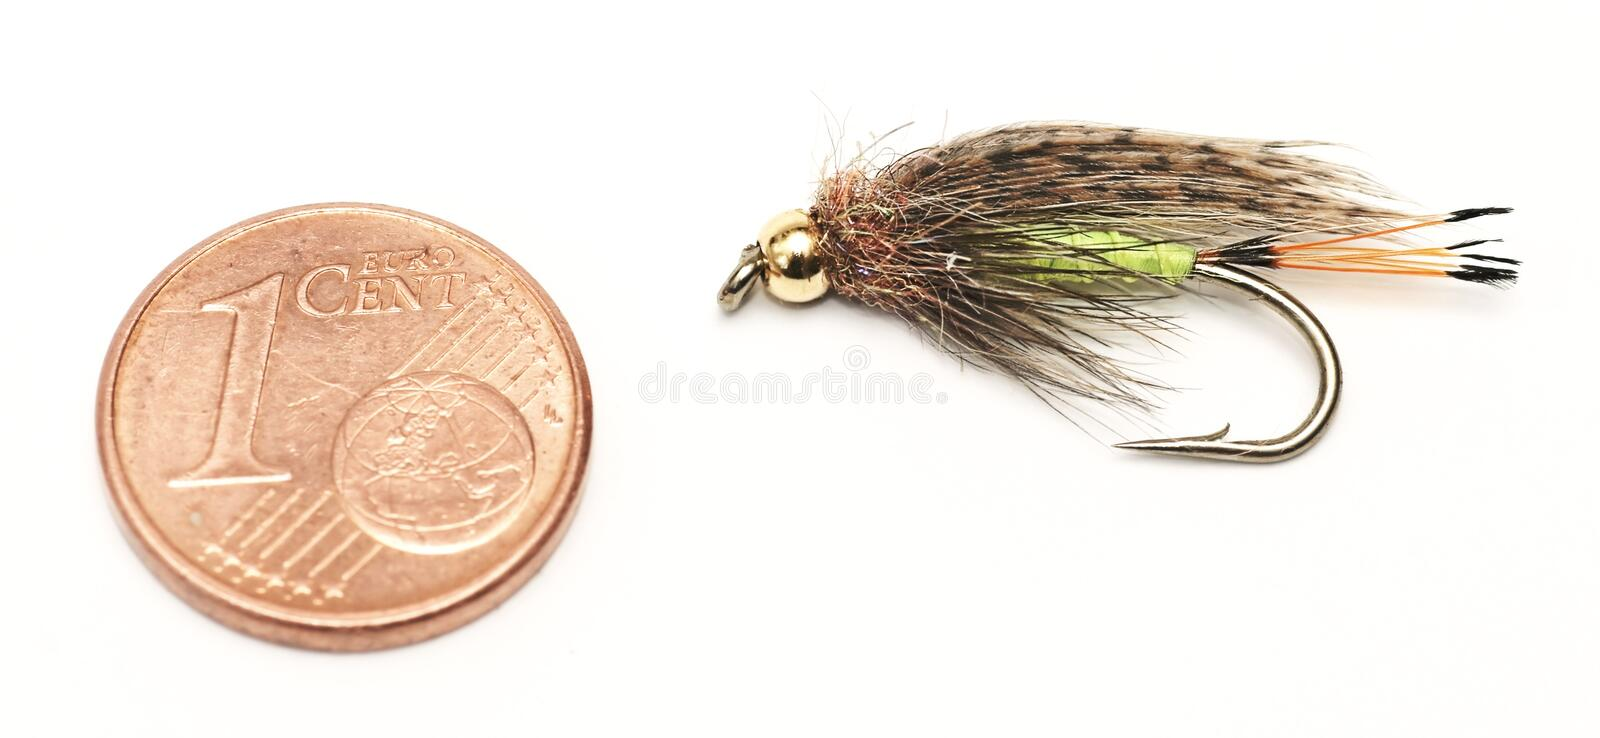 Fly fishing, bait, and one euro cent for size comparison. Fly fishing , bait, and one euro cent for size comparison stock photos